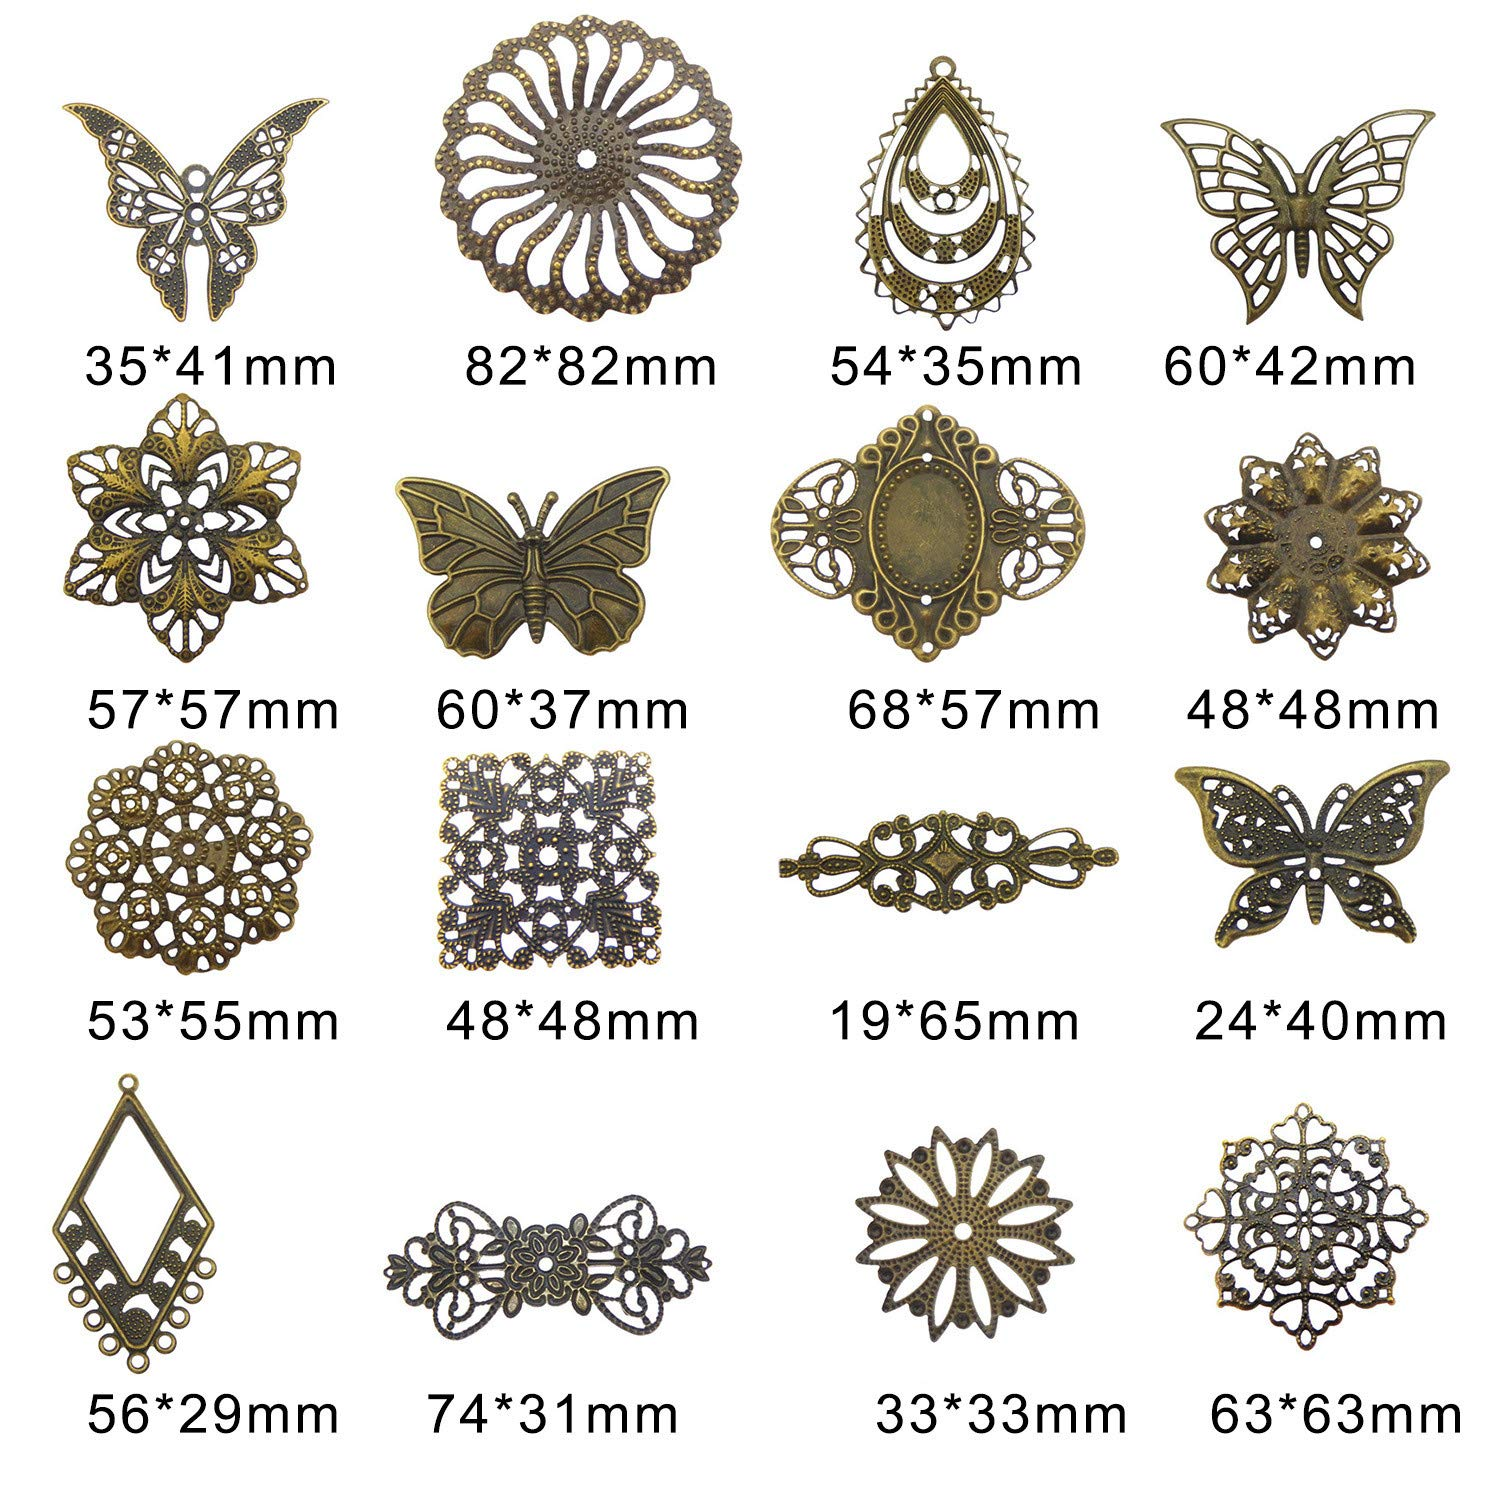 GraceAngie Wholesale 48 piece//pack Vintage Bronze Assorted Butterfly Hollow Flower Pattern Charms Pendants for Necklace Bracelets Jewelry Making DIY Handmade,1.2-3.2